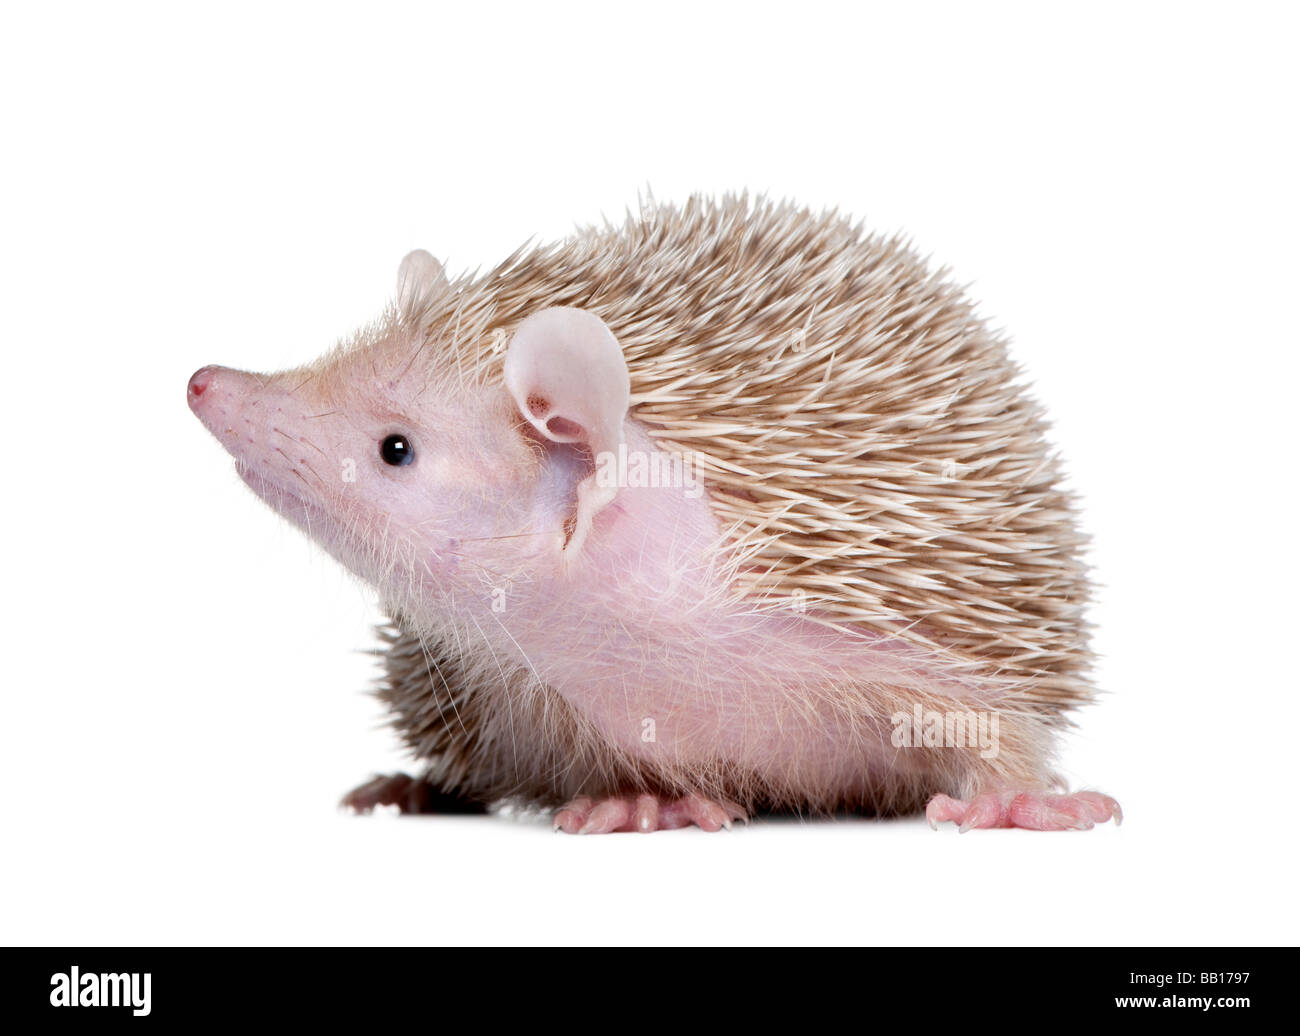 Lesser Hedgehog Tenrec Echinops telfairi in front of a white background It is endemic to Madagascar - Stock Image